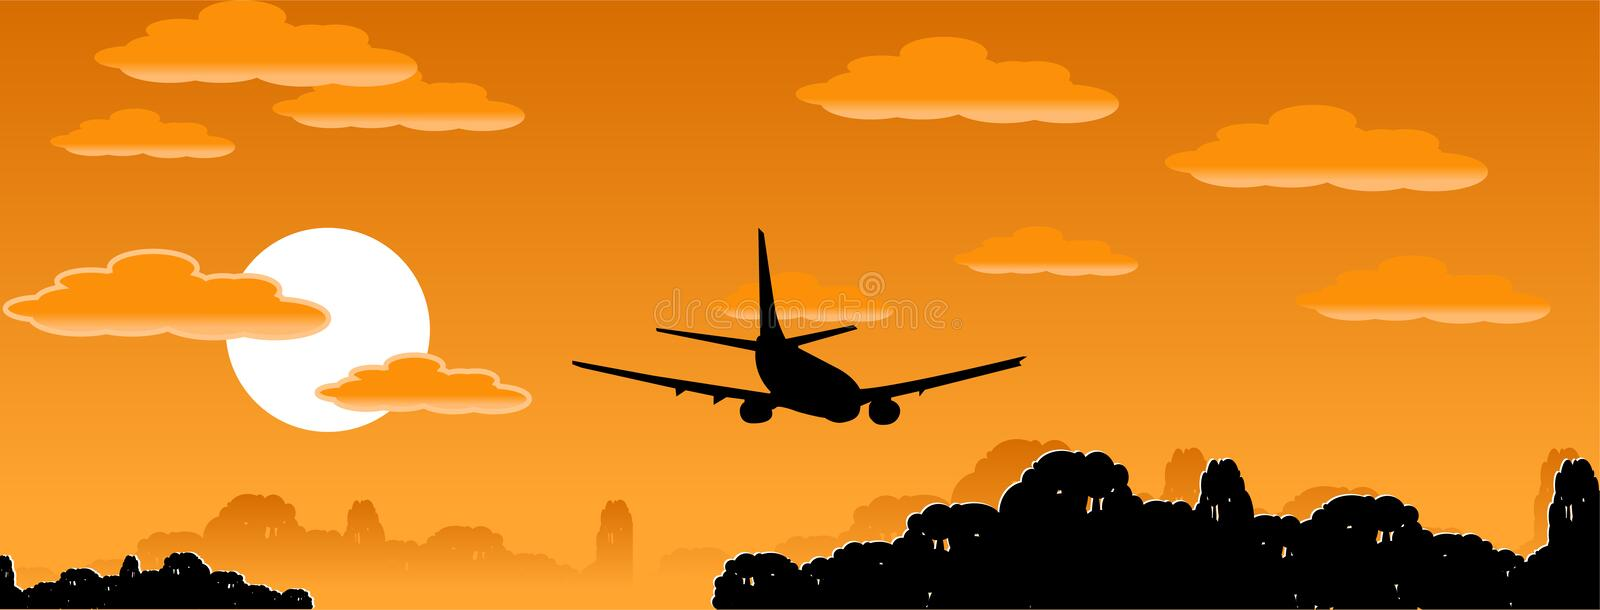 flygplan stock illustrationer